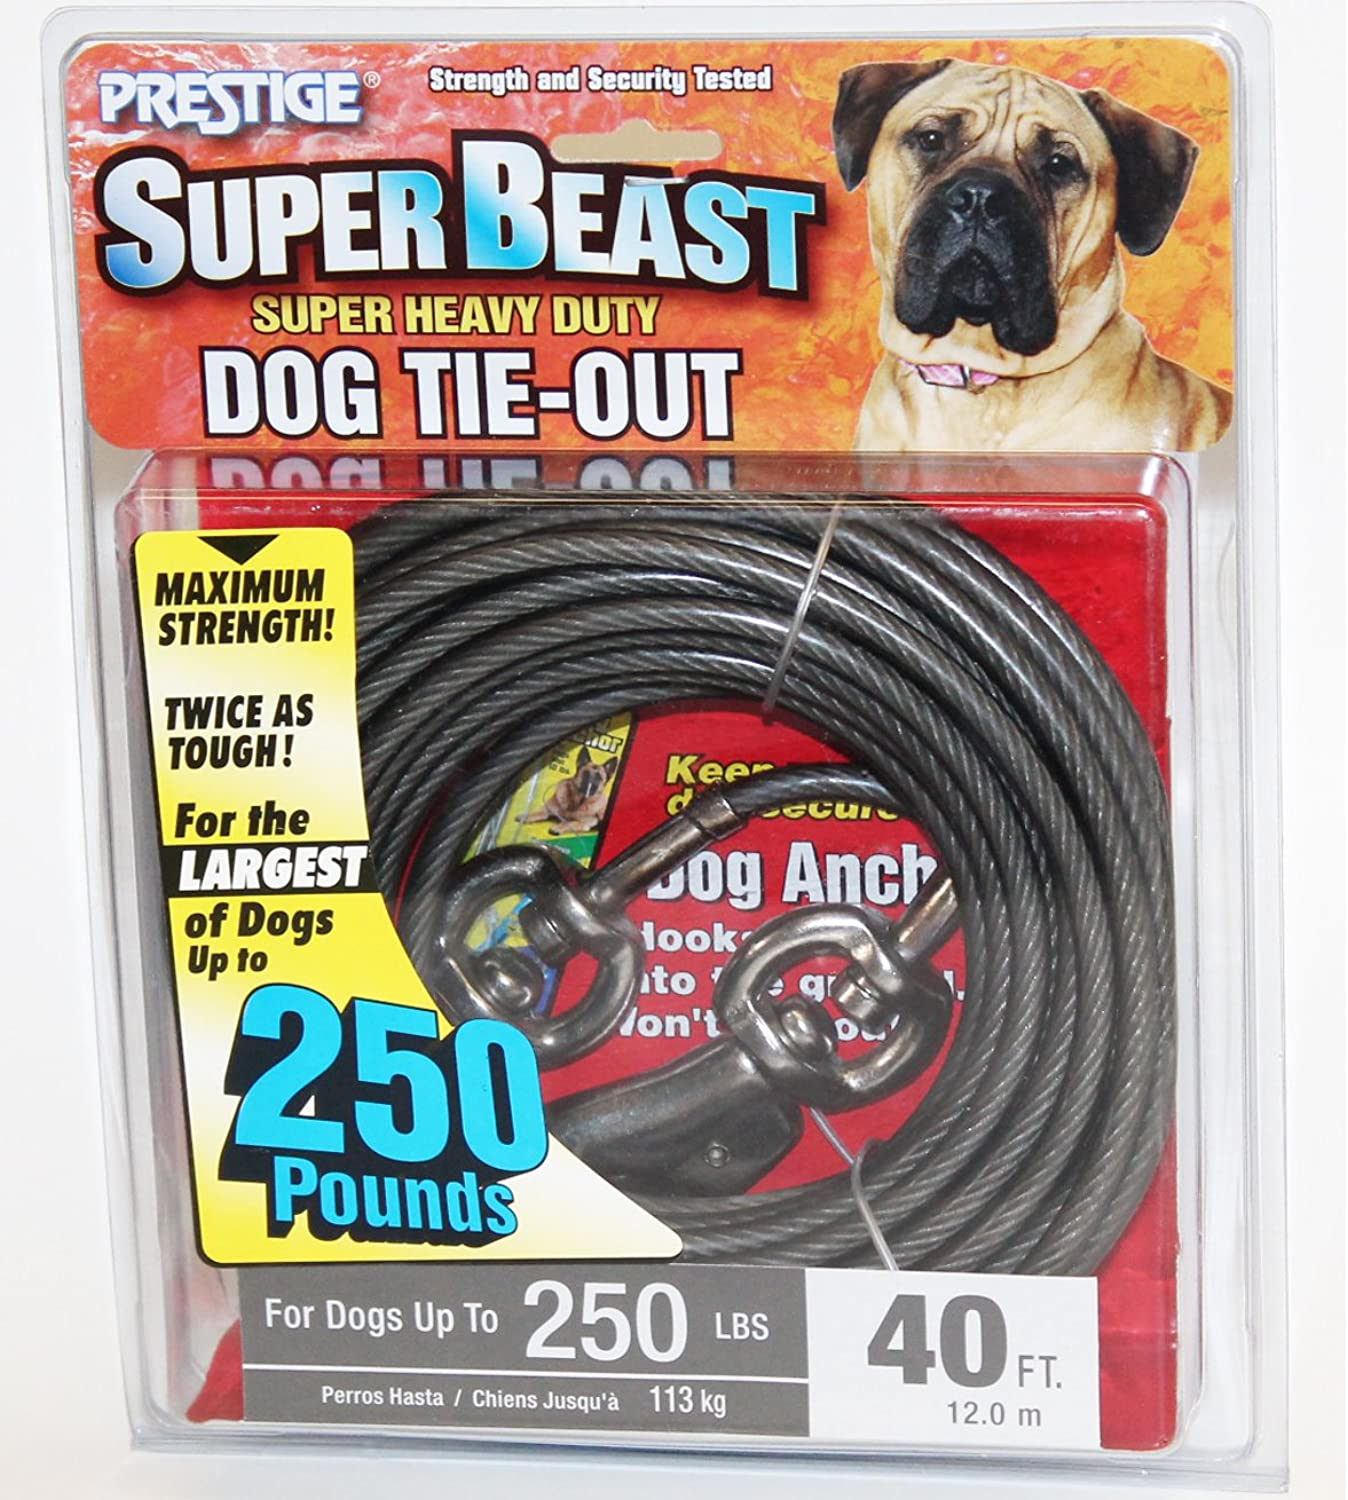 40' Super Beast Heavy Duty Tieout for Dogs up to 250lbs